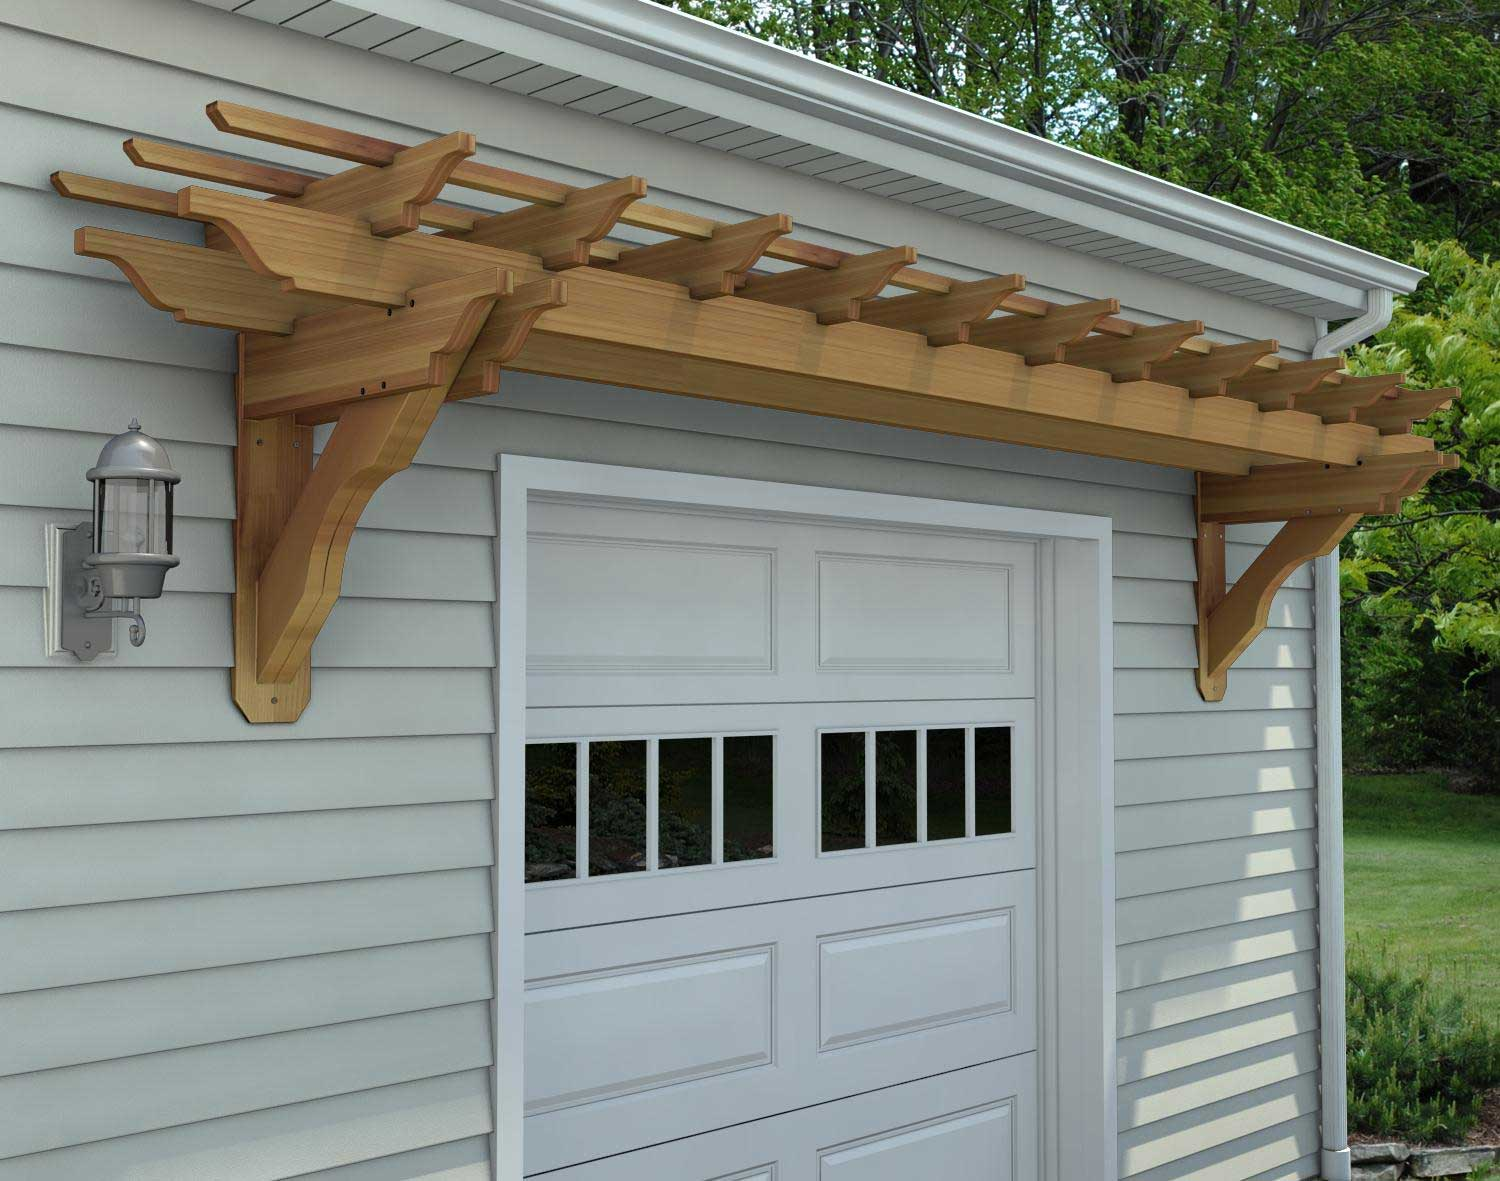 red cedar eyebrow breeze wall mount pergolas pergolas by material. Black Bedroom Furniture Sets. Home Design Ideas